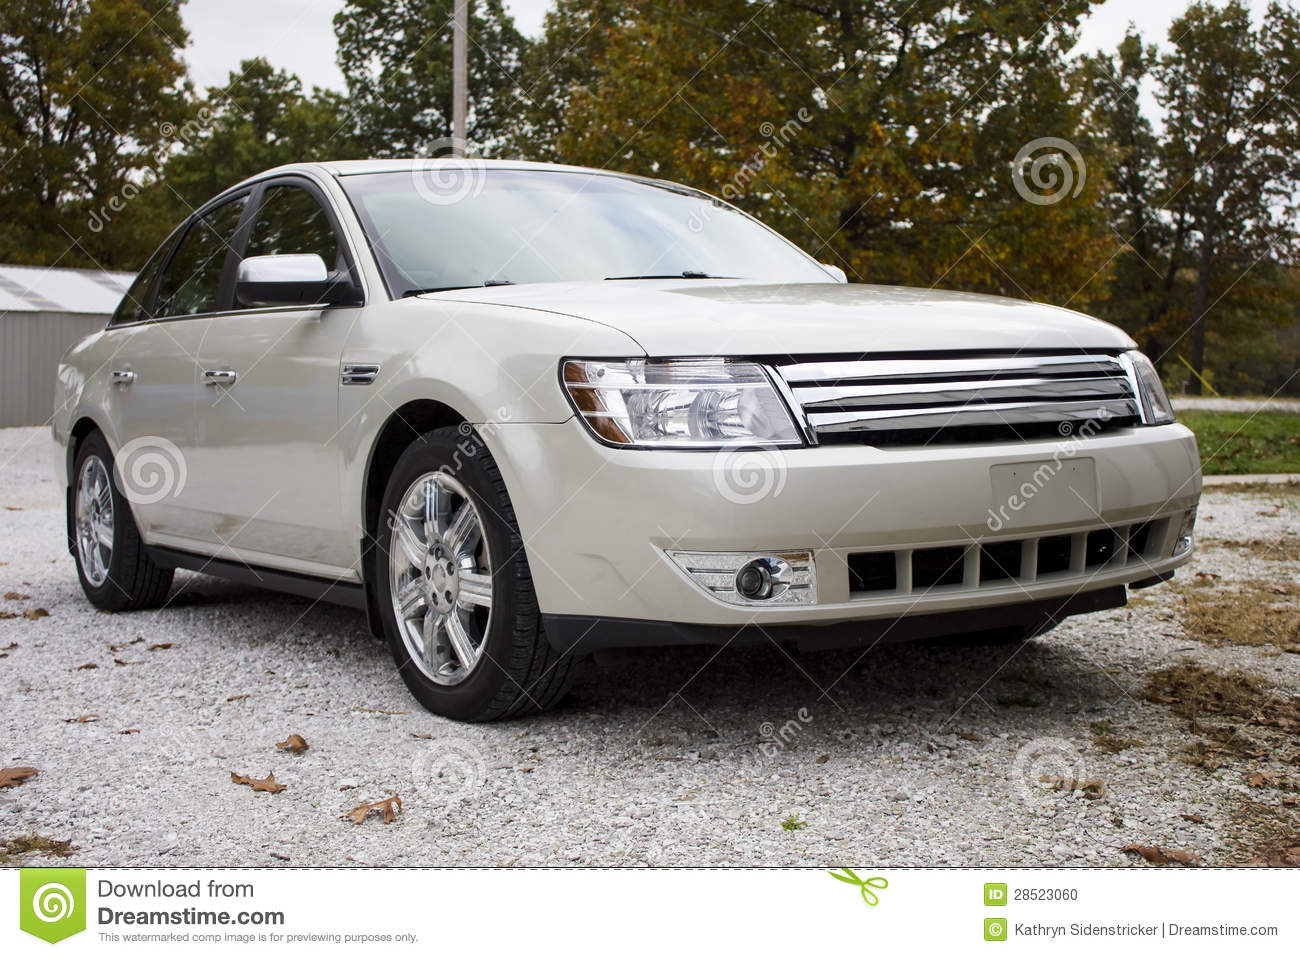 2008 ford taurus four door sedan stock photo image 28523060. Black Bedroom Furniture Sets. Home Design Ideas